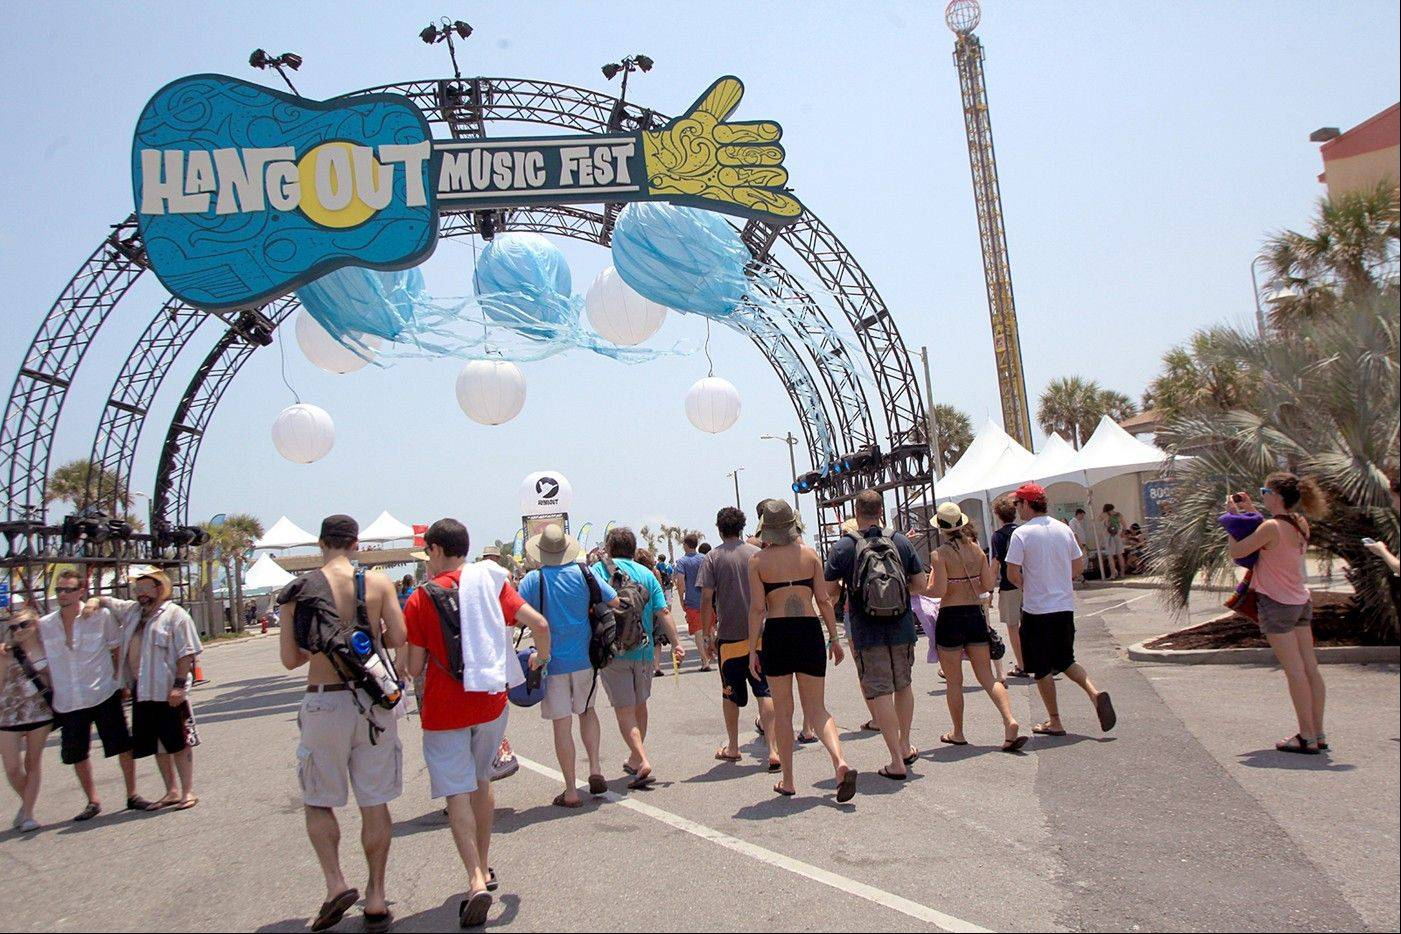 Festival goers arrive for the three-day Hangout Music Festival in Gulf Shores, Ala.